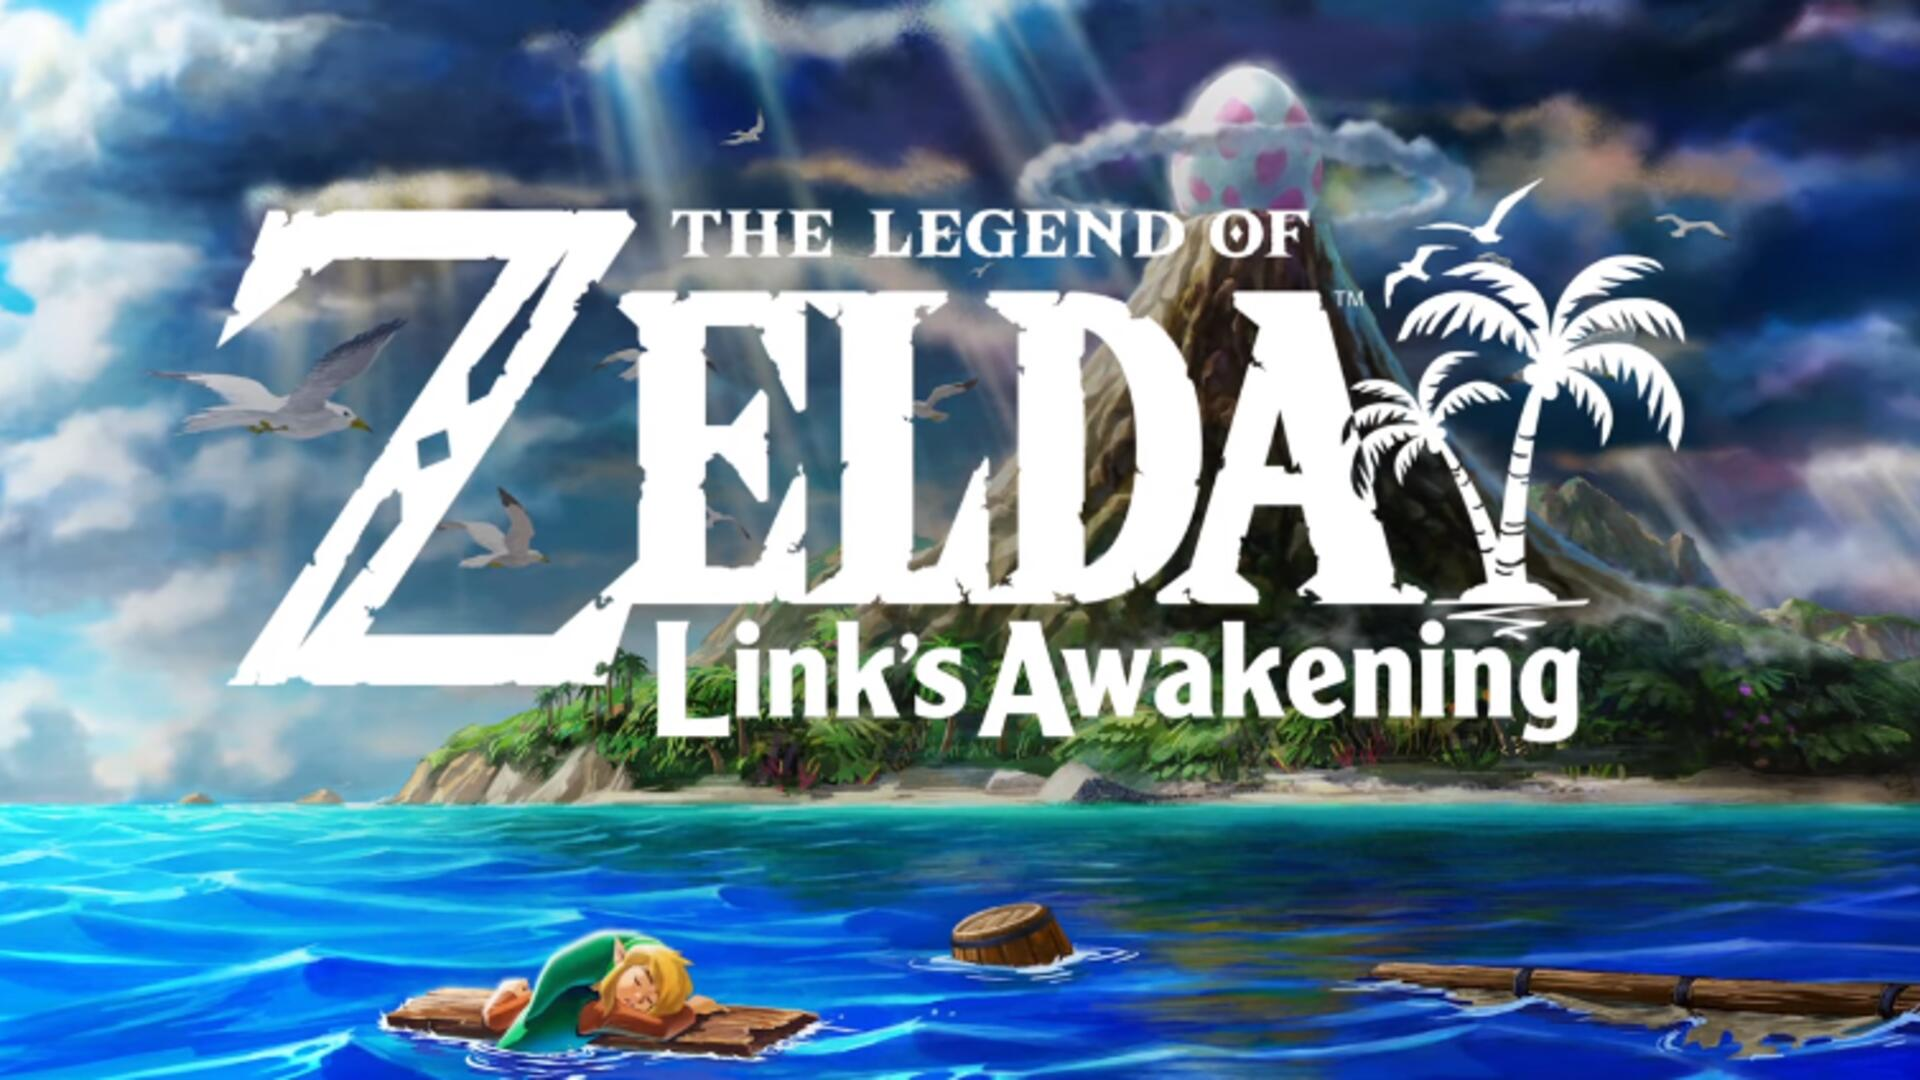 Nintendo Direct Bombshell: The Legend of Zelda: Link's Awakening is Getting a Full Remake on Switch This Year